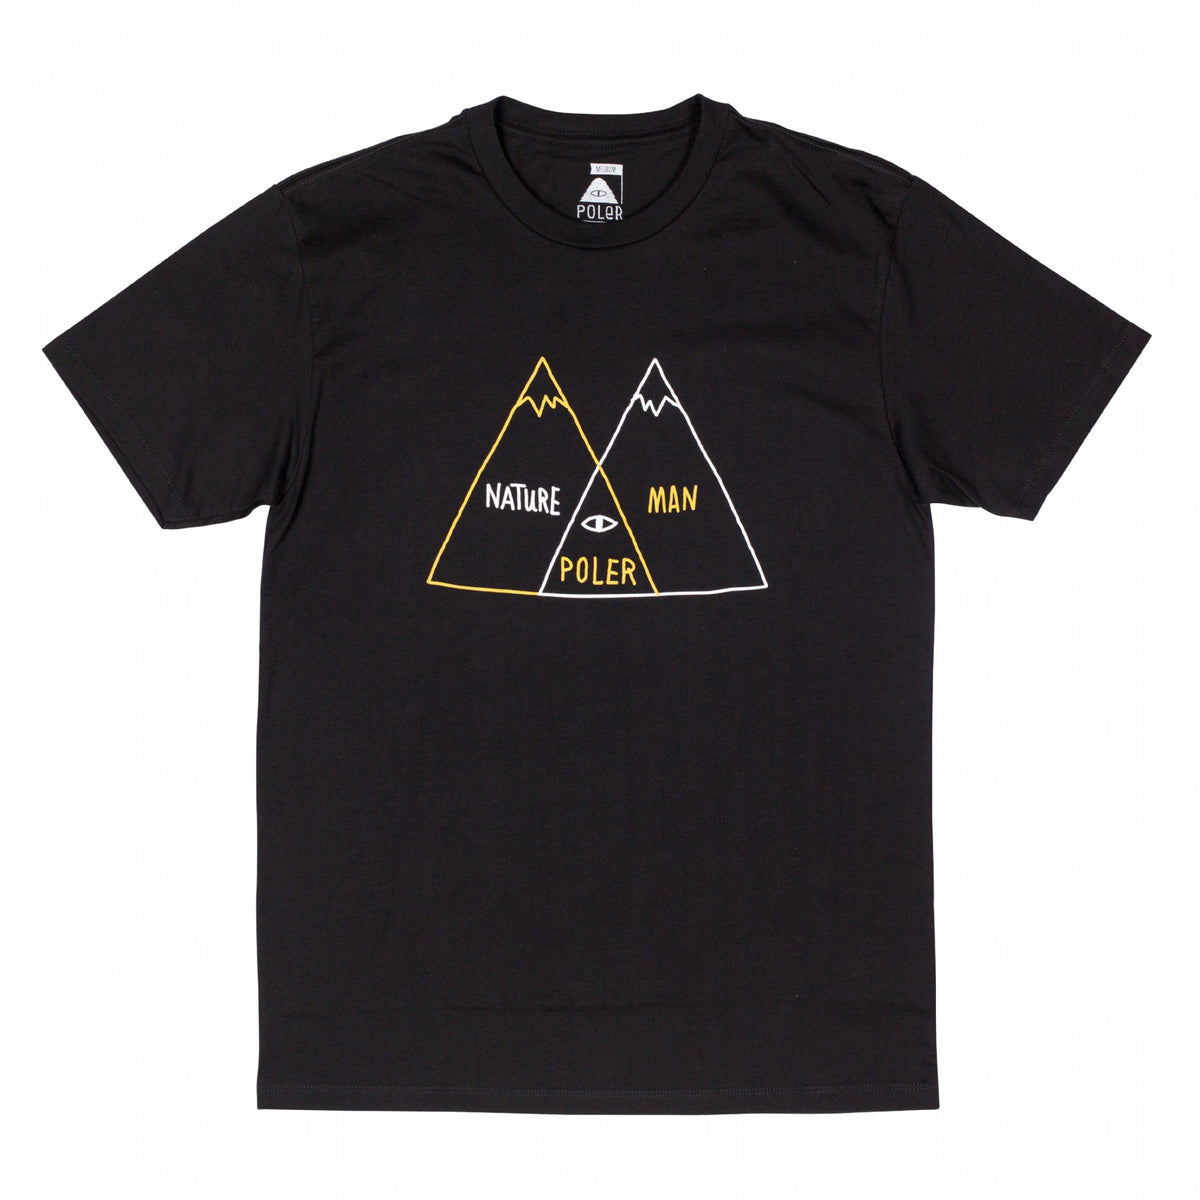 Venn Diagram Tee - Black